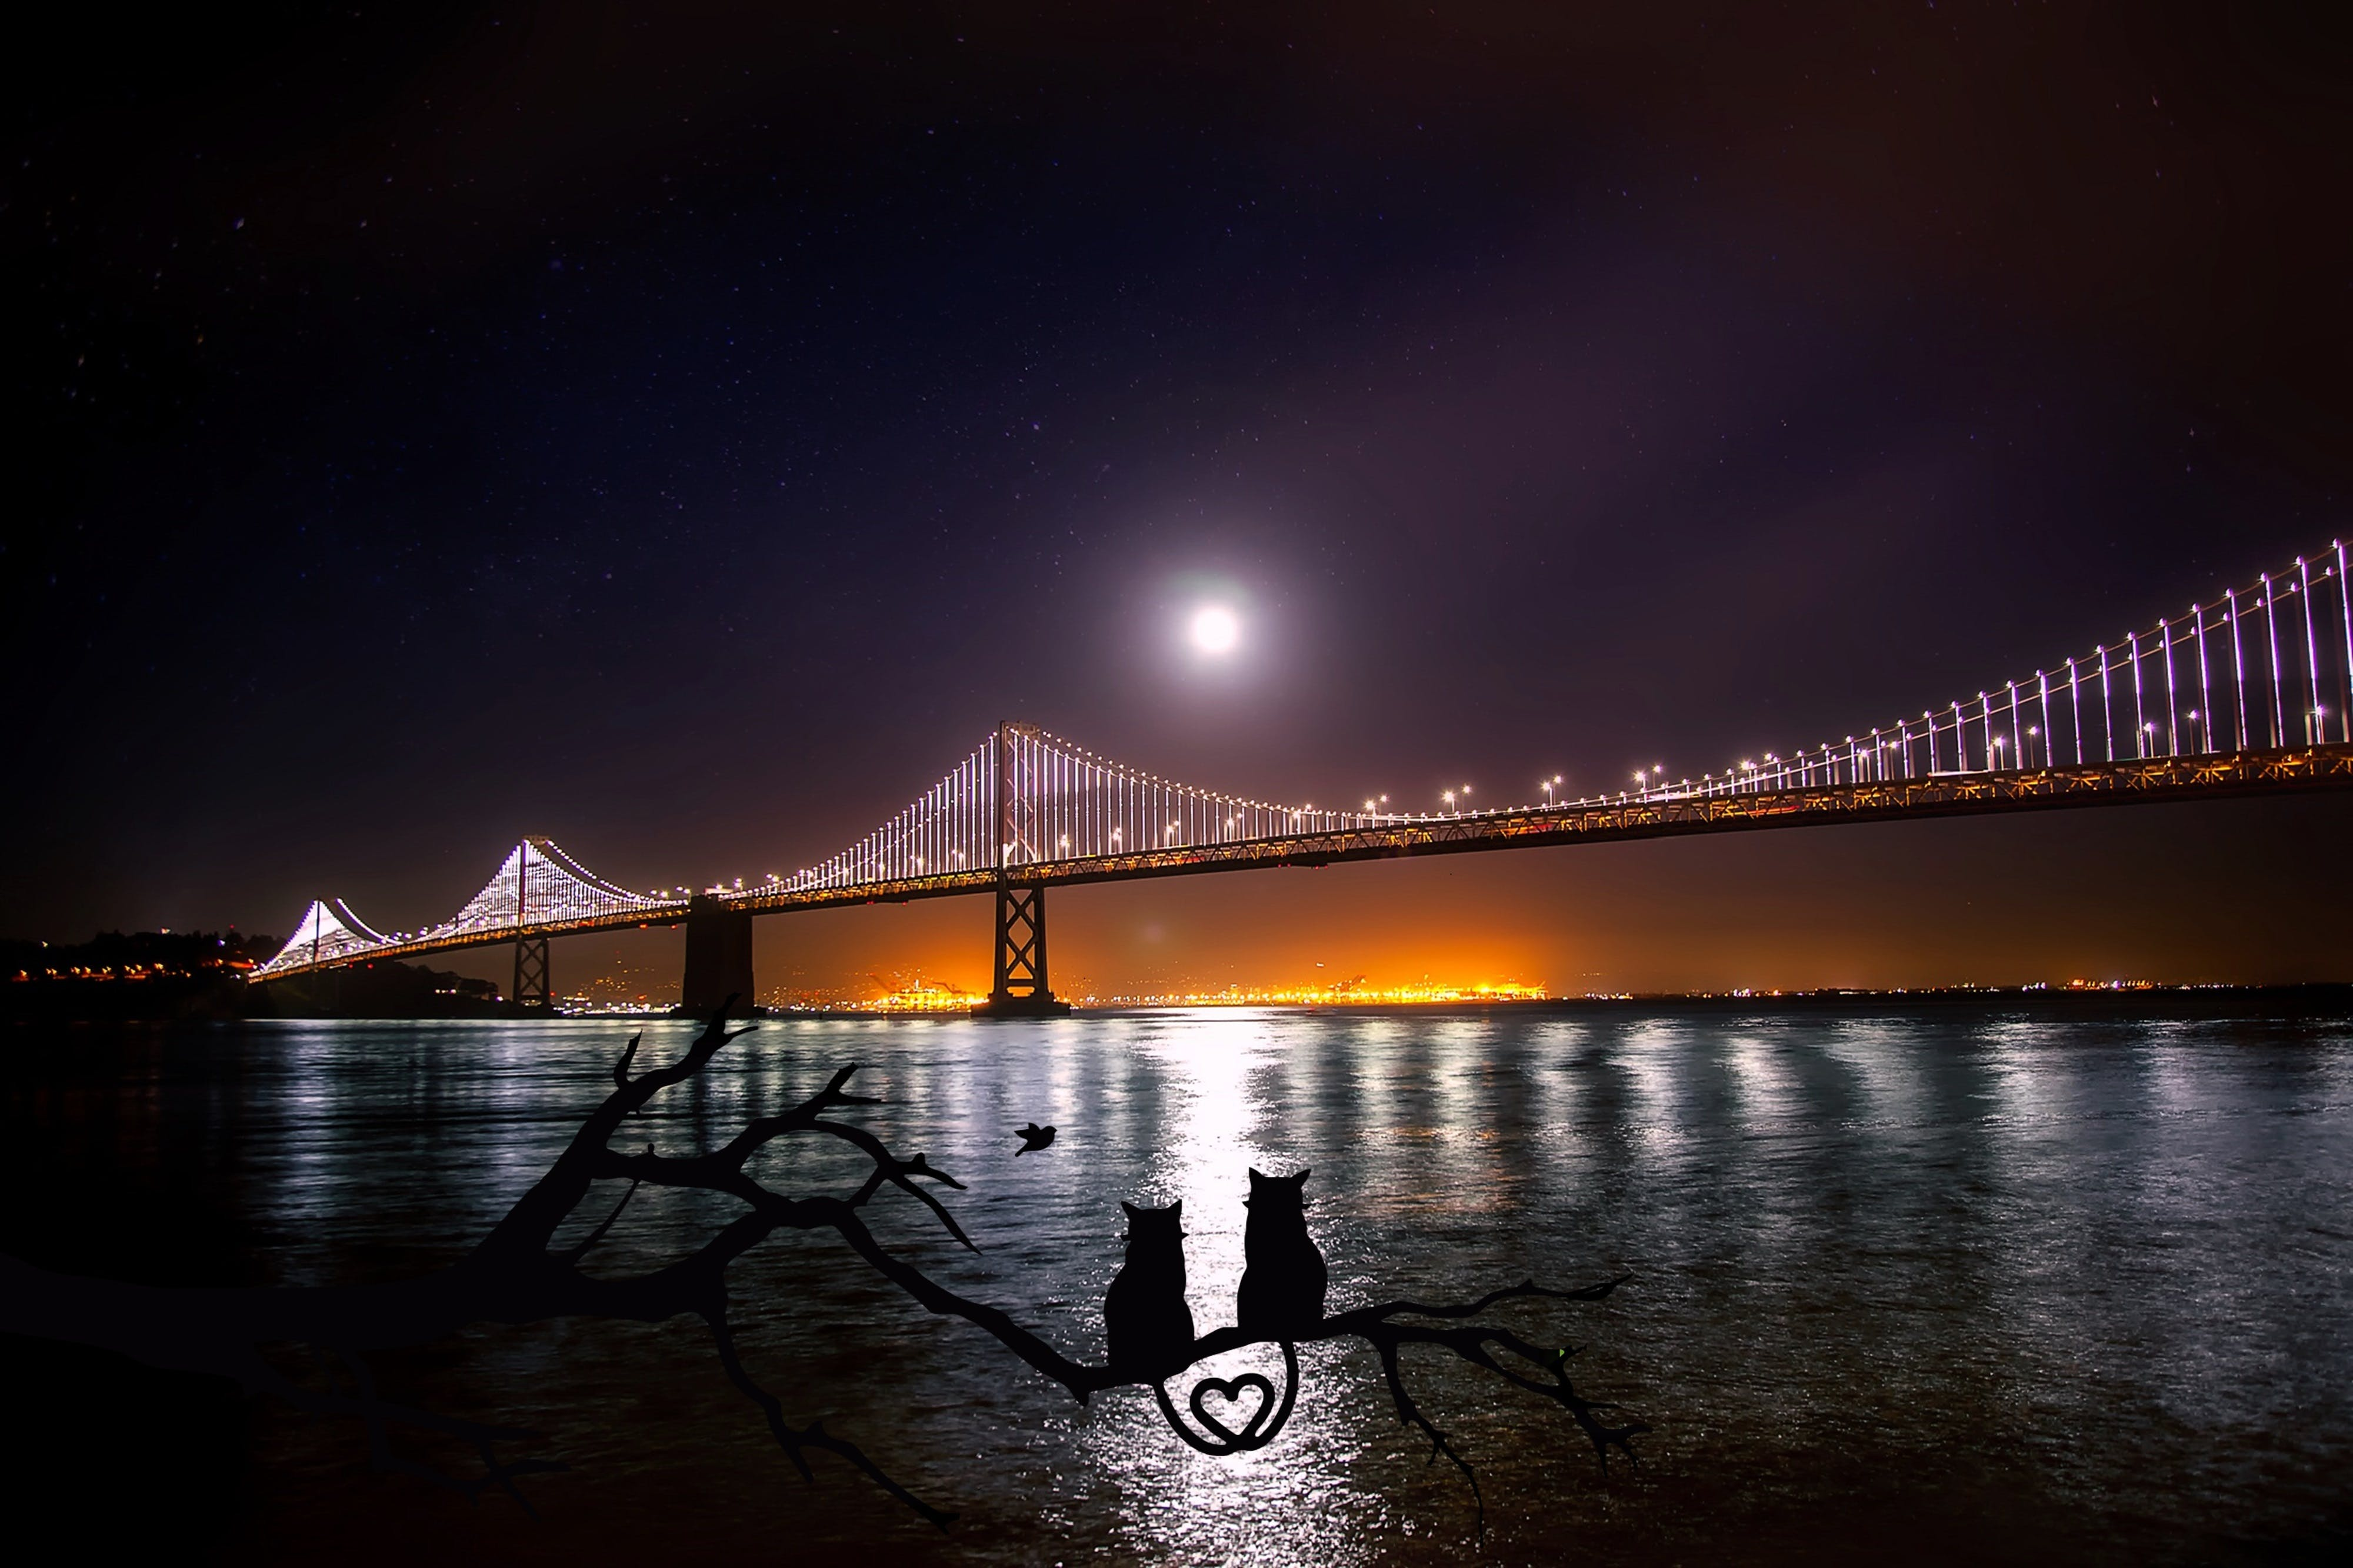 architecture, atmospheric, bay